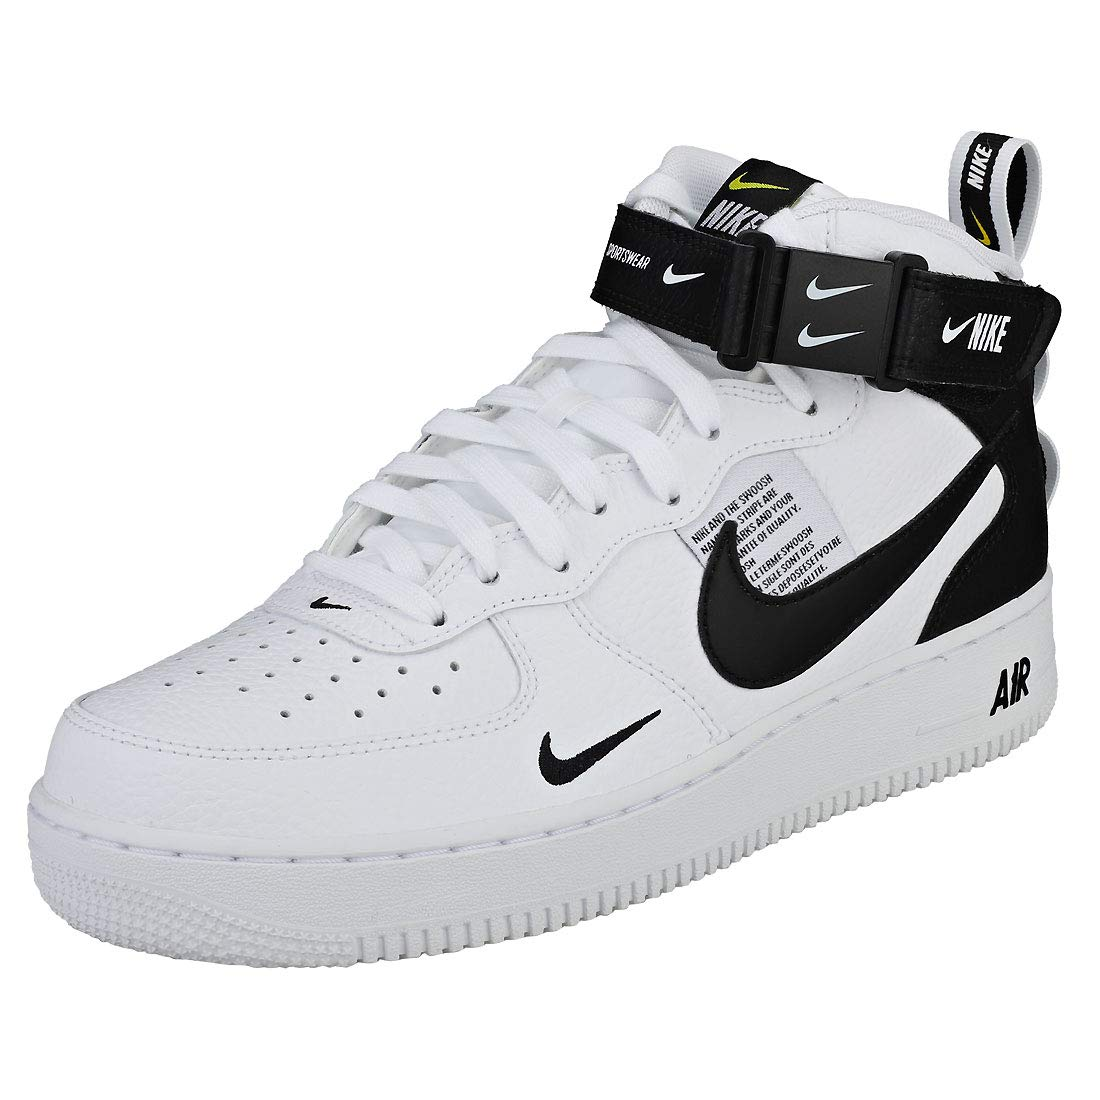 hot sale online fbbf5 1eb2f NIKE Air Force 1 Mid 07 Lv8 Mens Trainers White Black - 10 UK  Amazon.co.uk Shoes  Bags